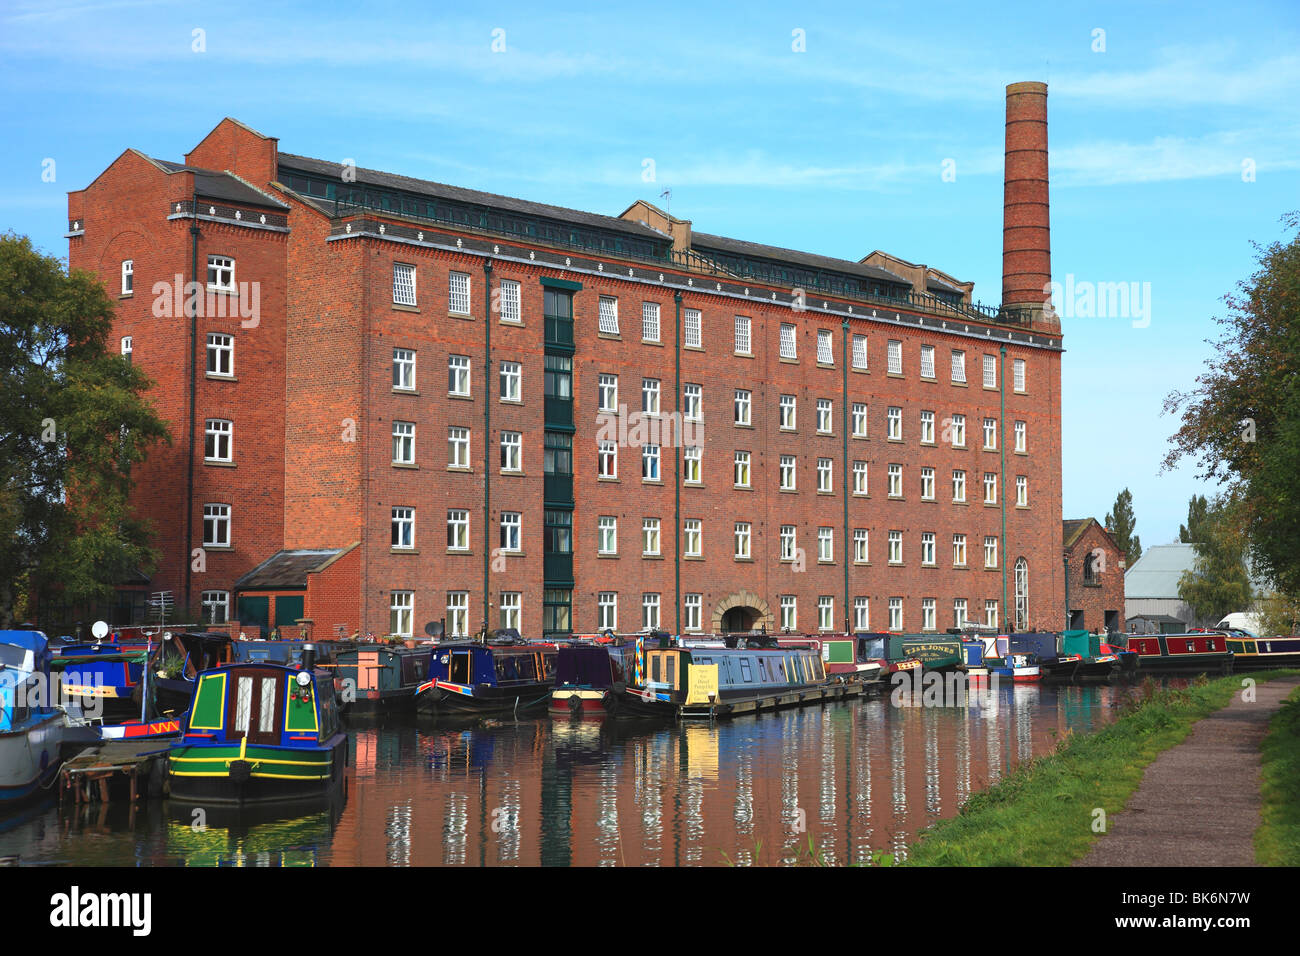 Hovis Mill on the Macclesfield Canal at Macclesfield, an old flour mill now converted to apartments - Stock Image